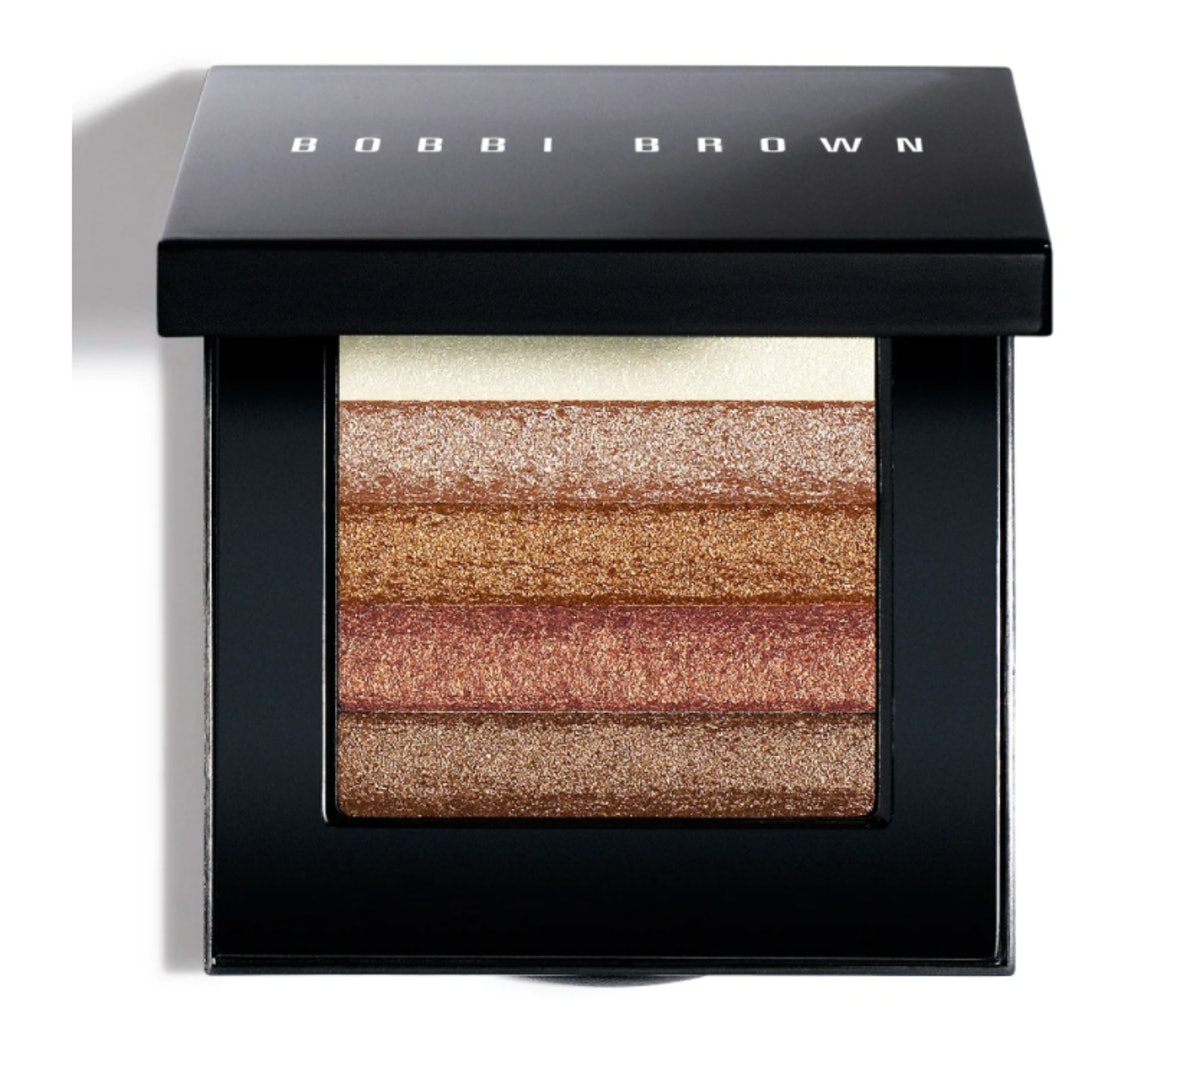 Shimmer Brick Compact in Bronze